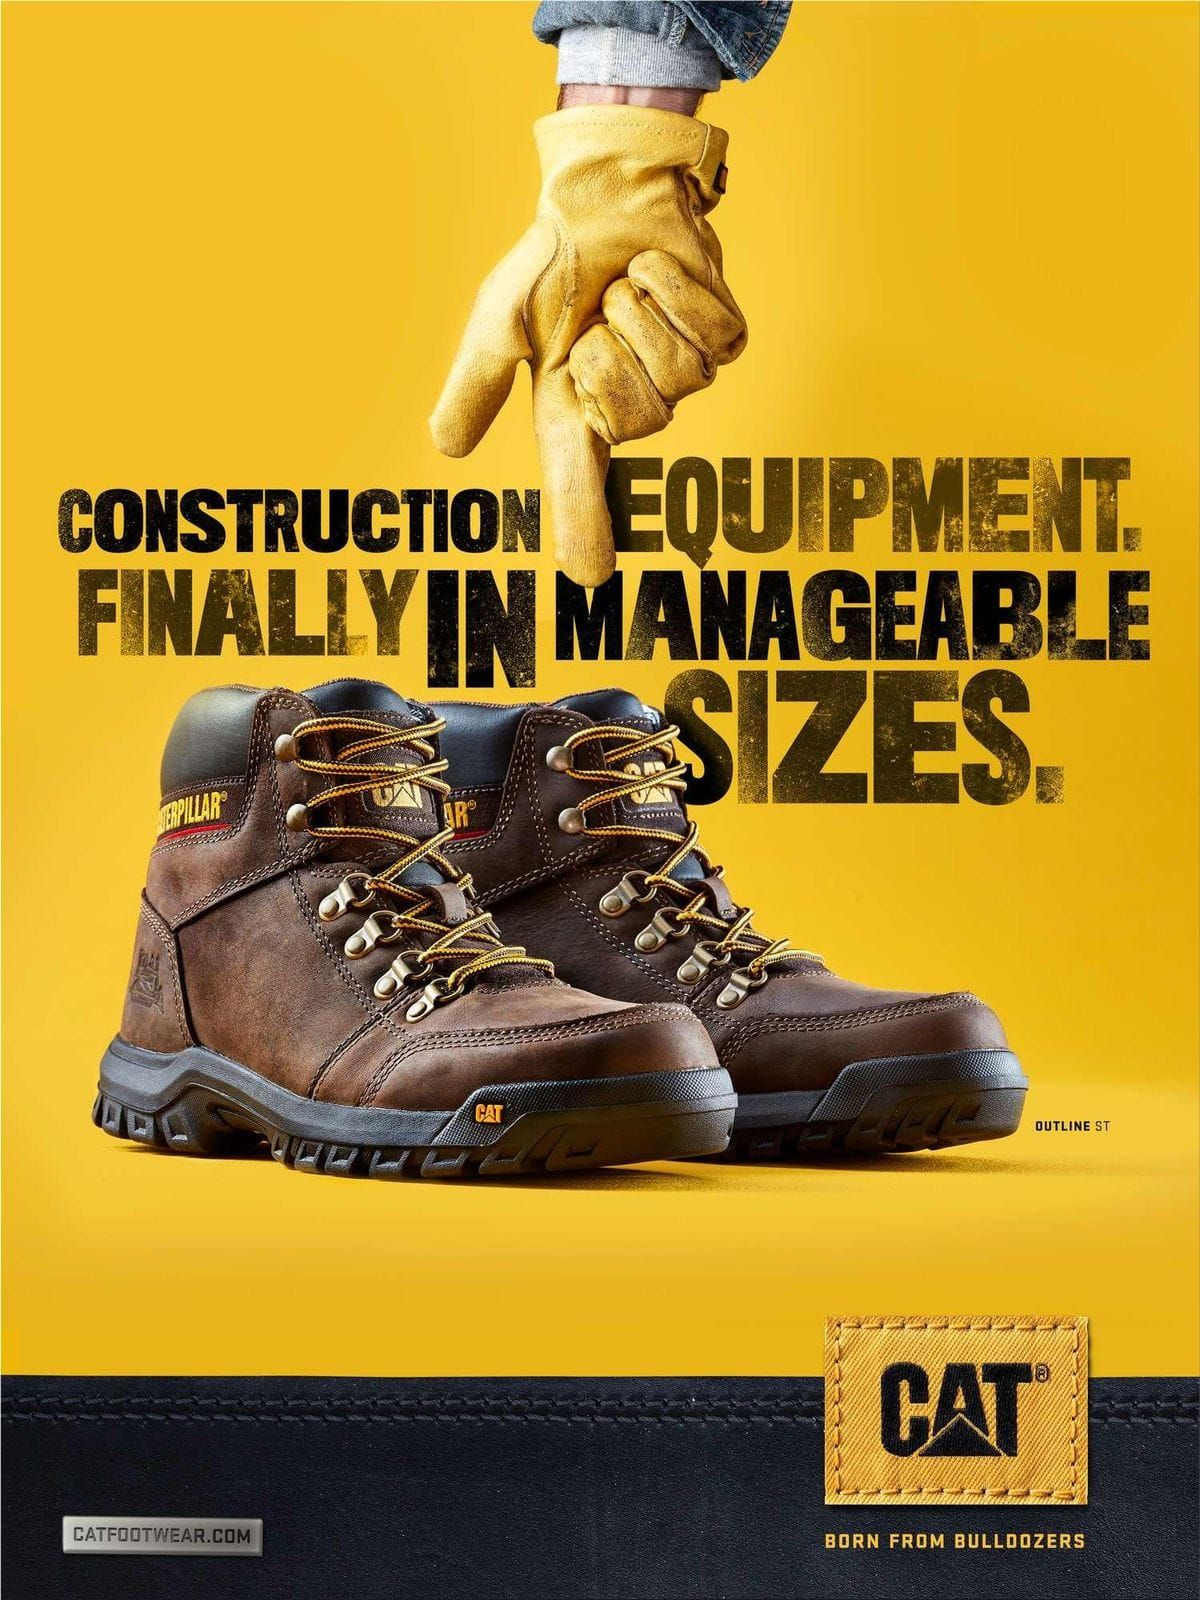 Cat Footwear Go Ahead Cat Footwear Ads